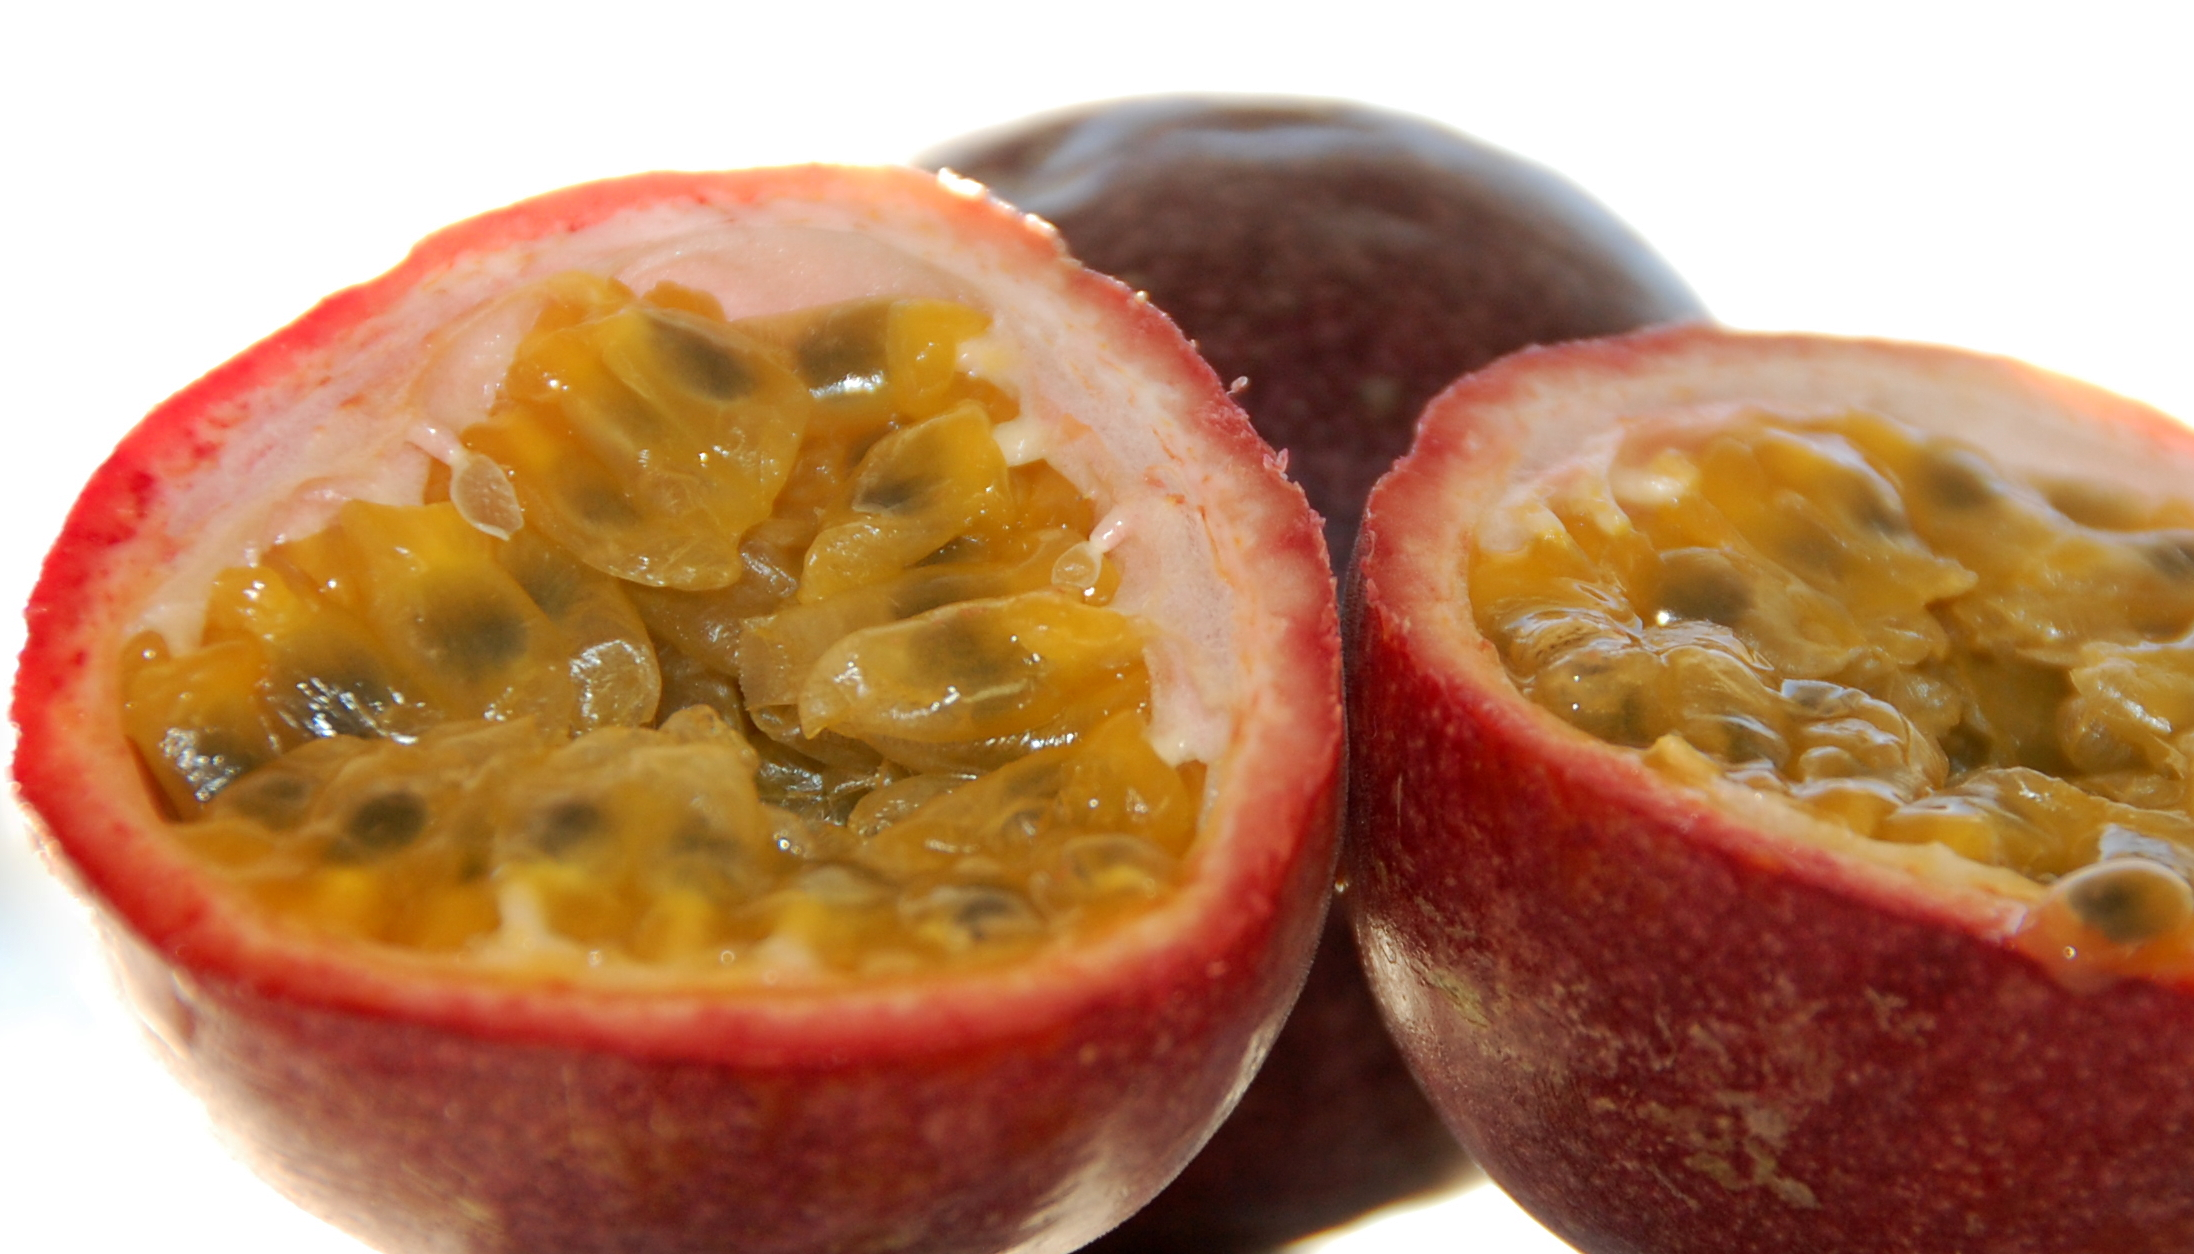 Passion fruit 3 Large.jpg